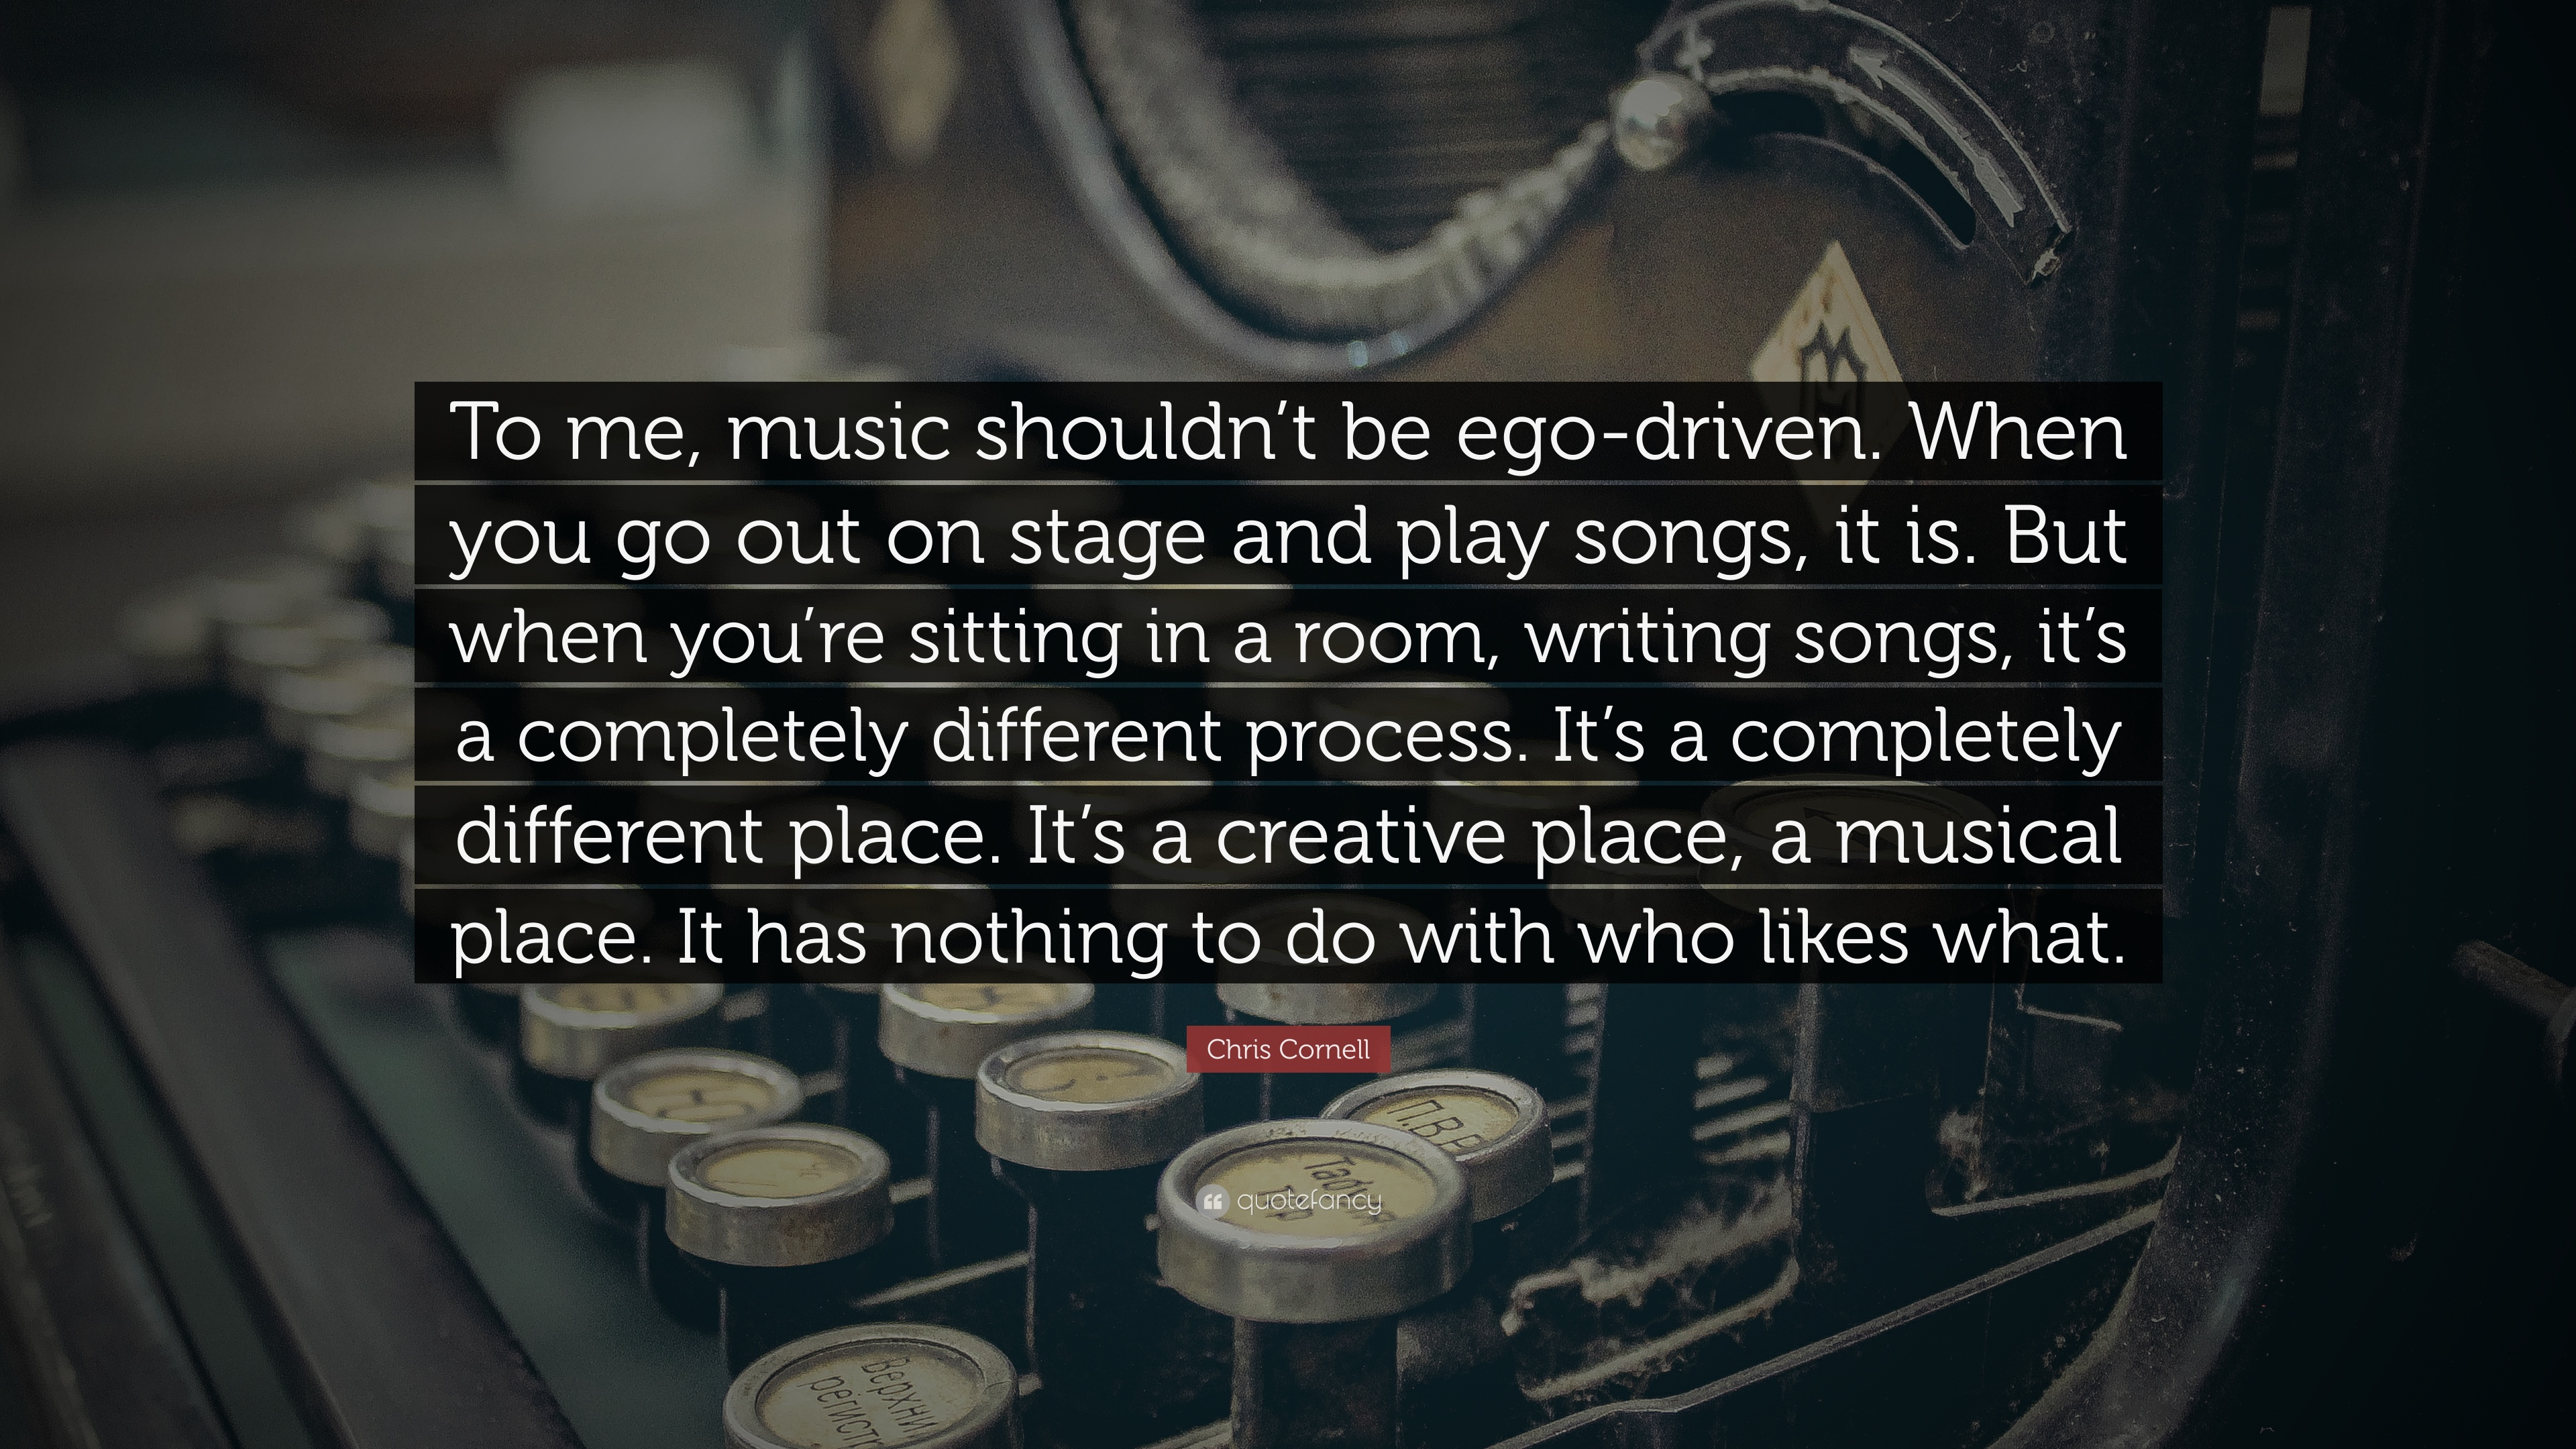 021 Cornell Essay Example Chris Quote To Me Music Shouldn T Ego Driven When Stupendous Mba Examples Engineering Essays That Worked Full